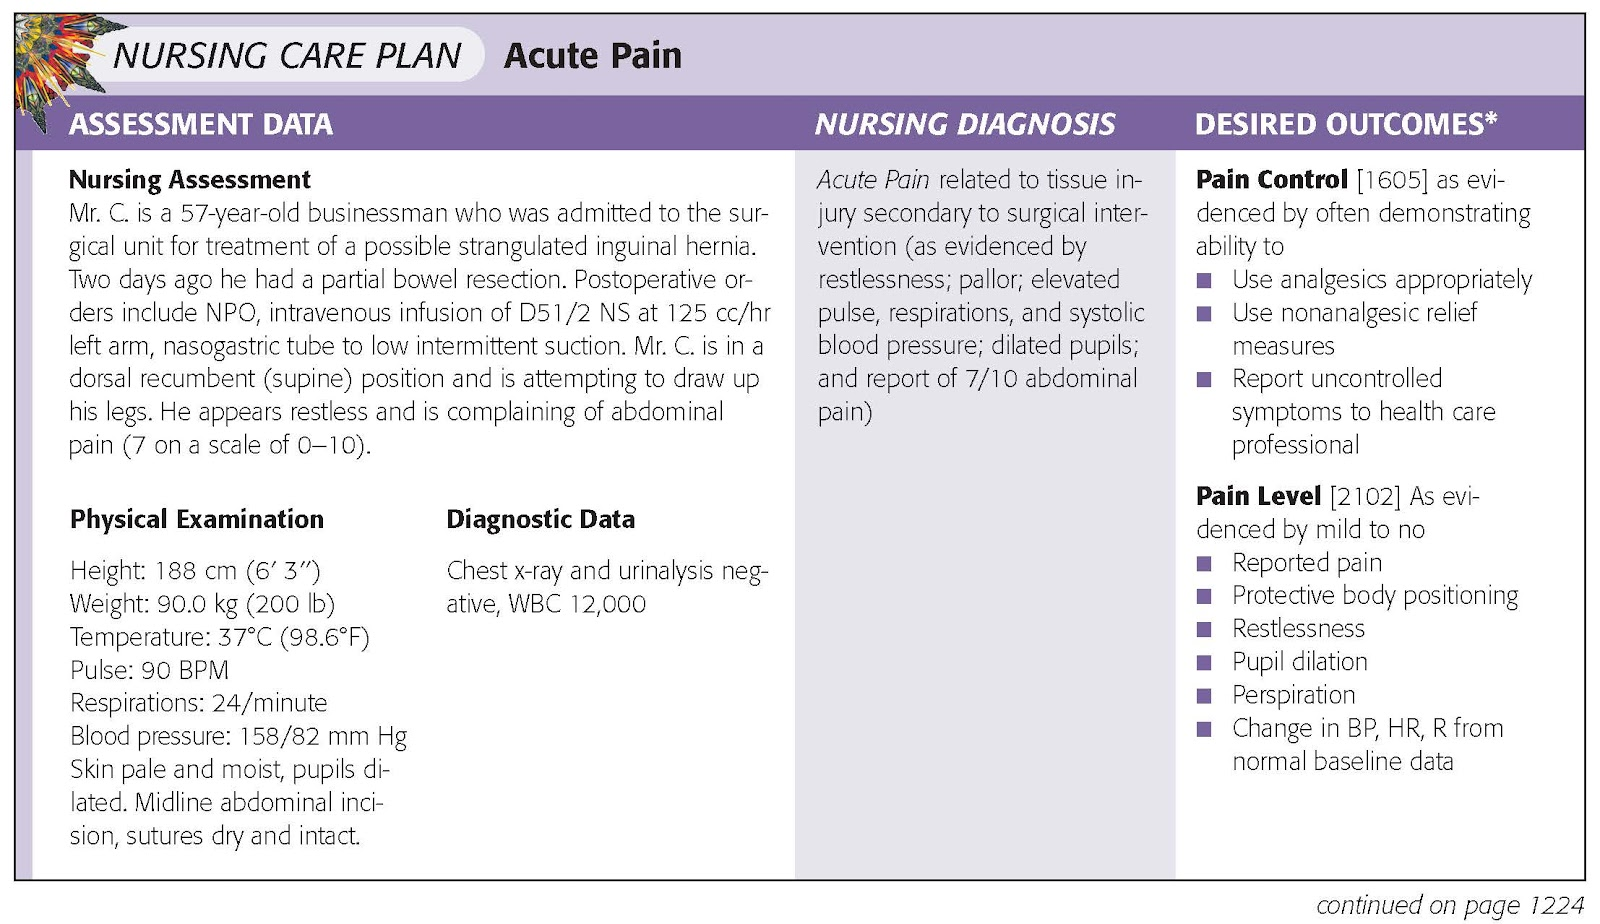 Is Your Pain Acute or Chronic?